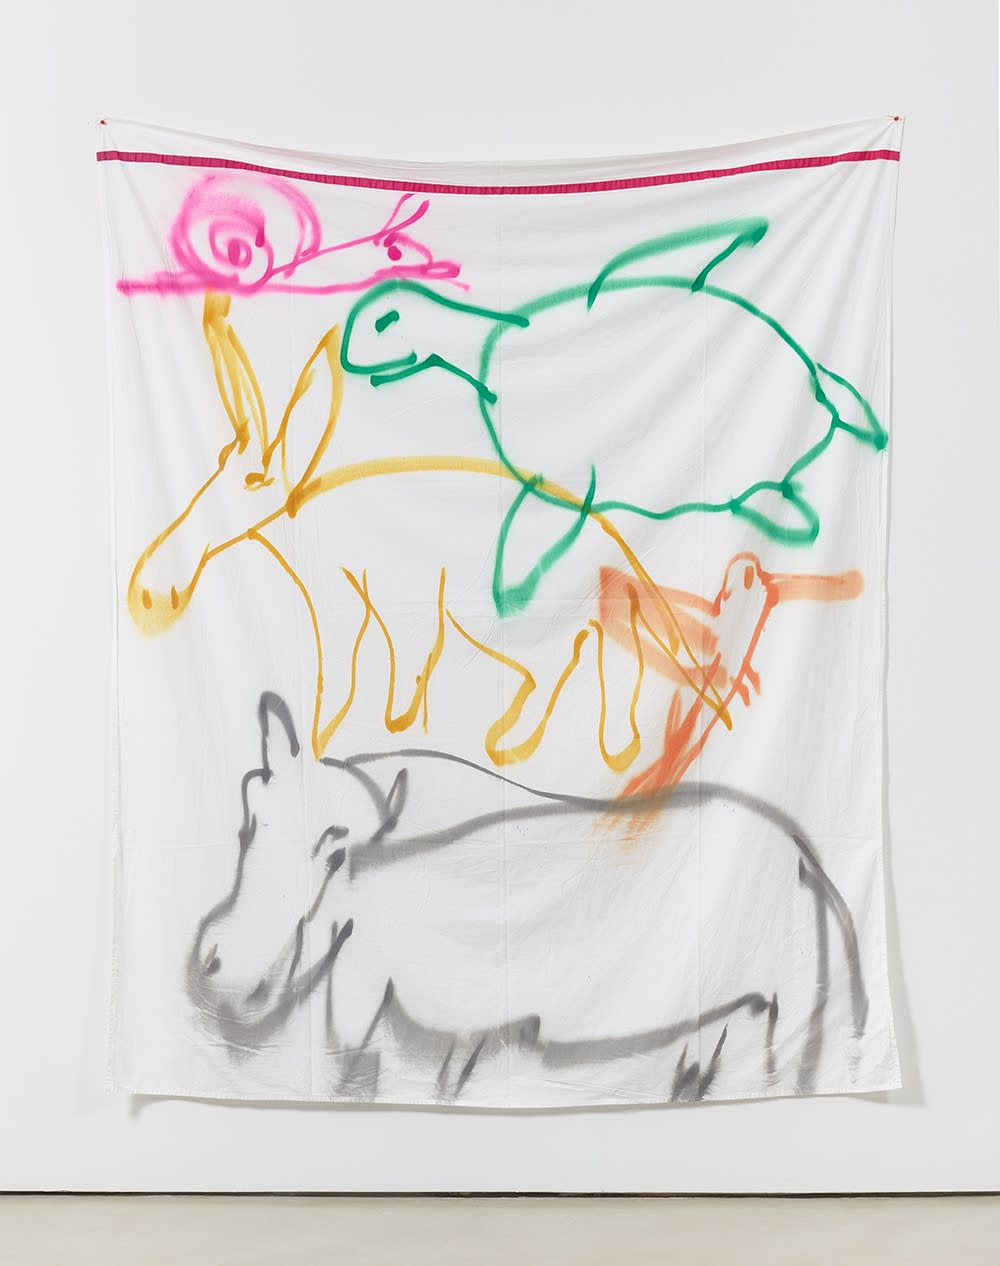 Polly Apfelbaum, Stacked Animals, 2016 bed sheet, ribbon, fabric, spray paint, 104 x 81 in